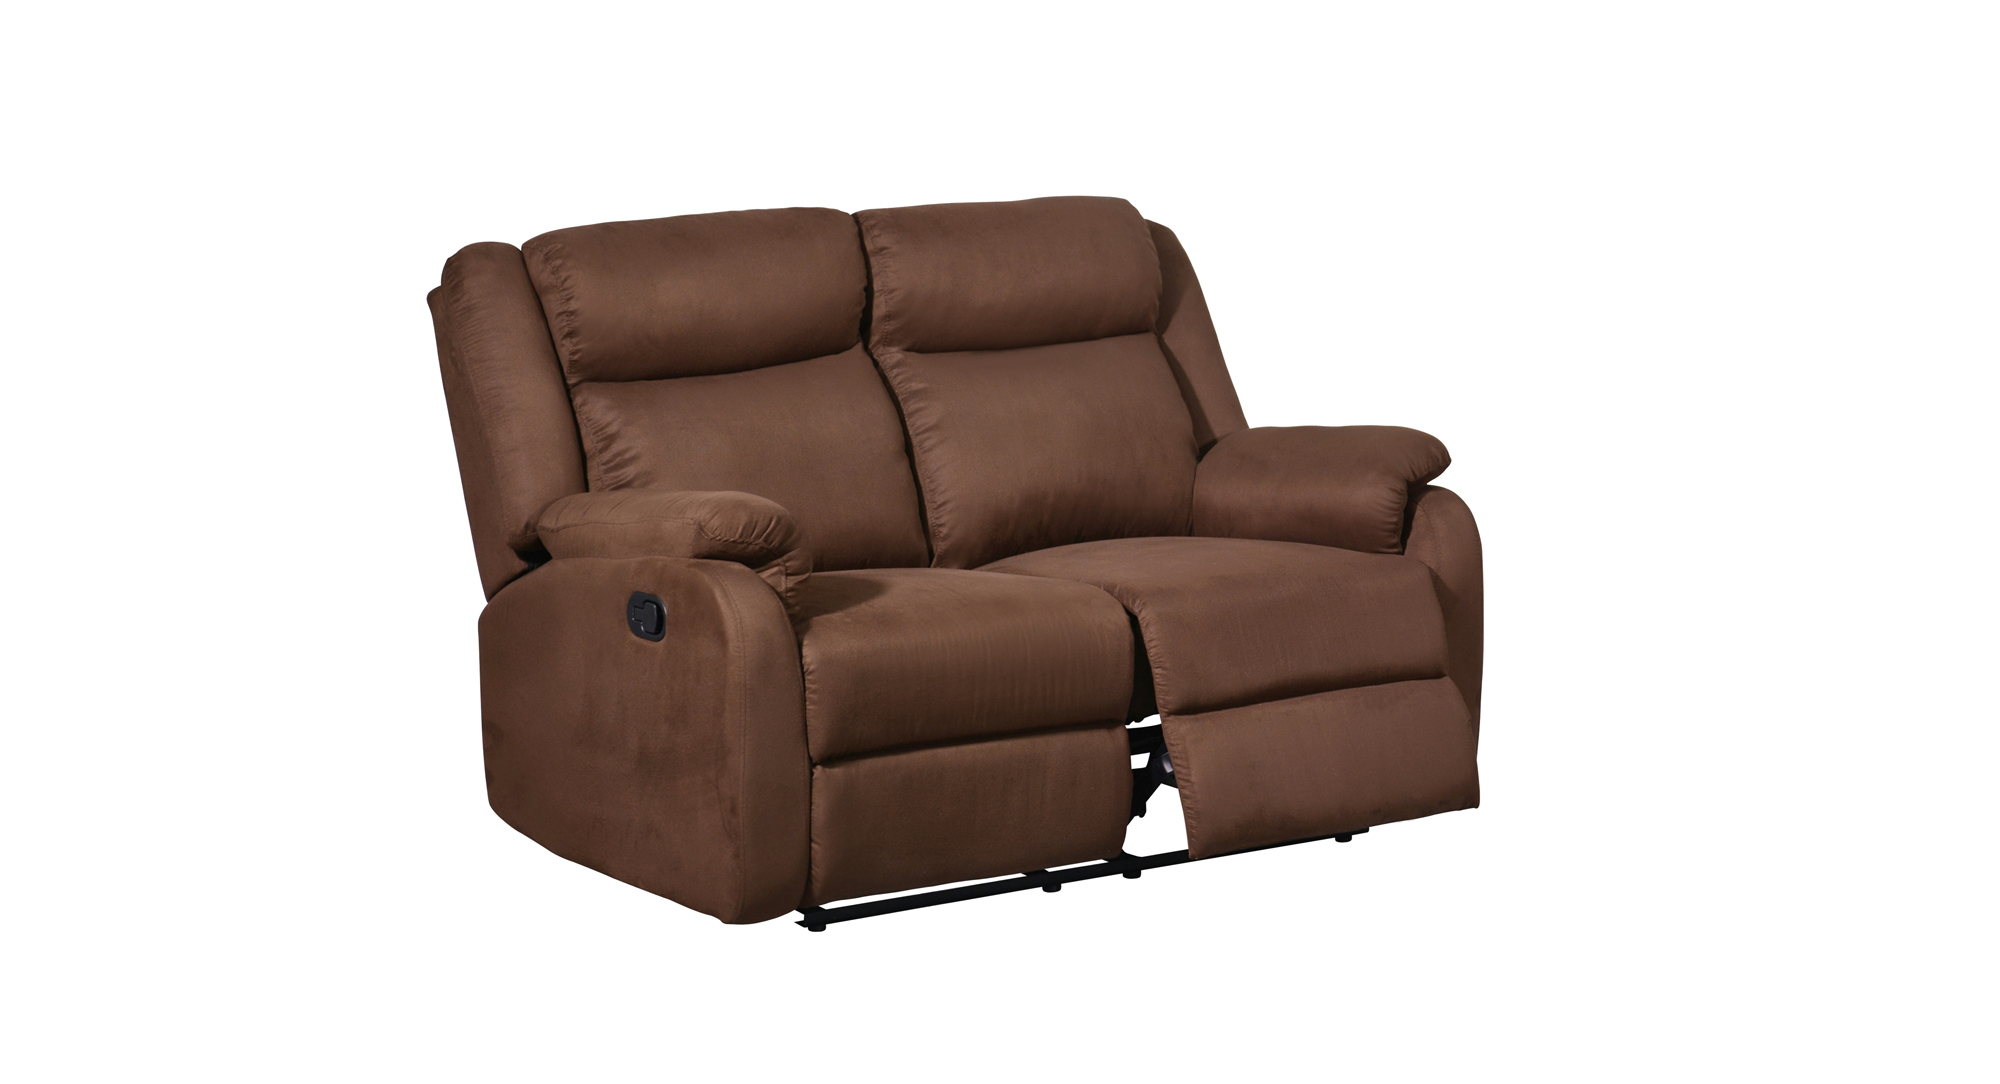 U8303 Chocolate Fabric Reclining Loveseat By Global Furniture